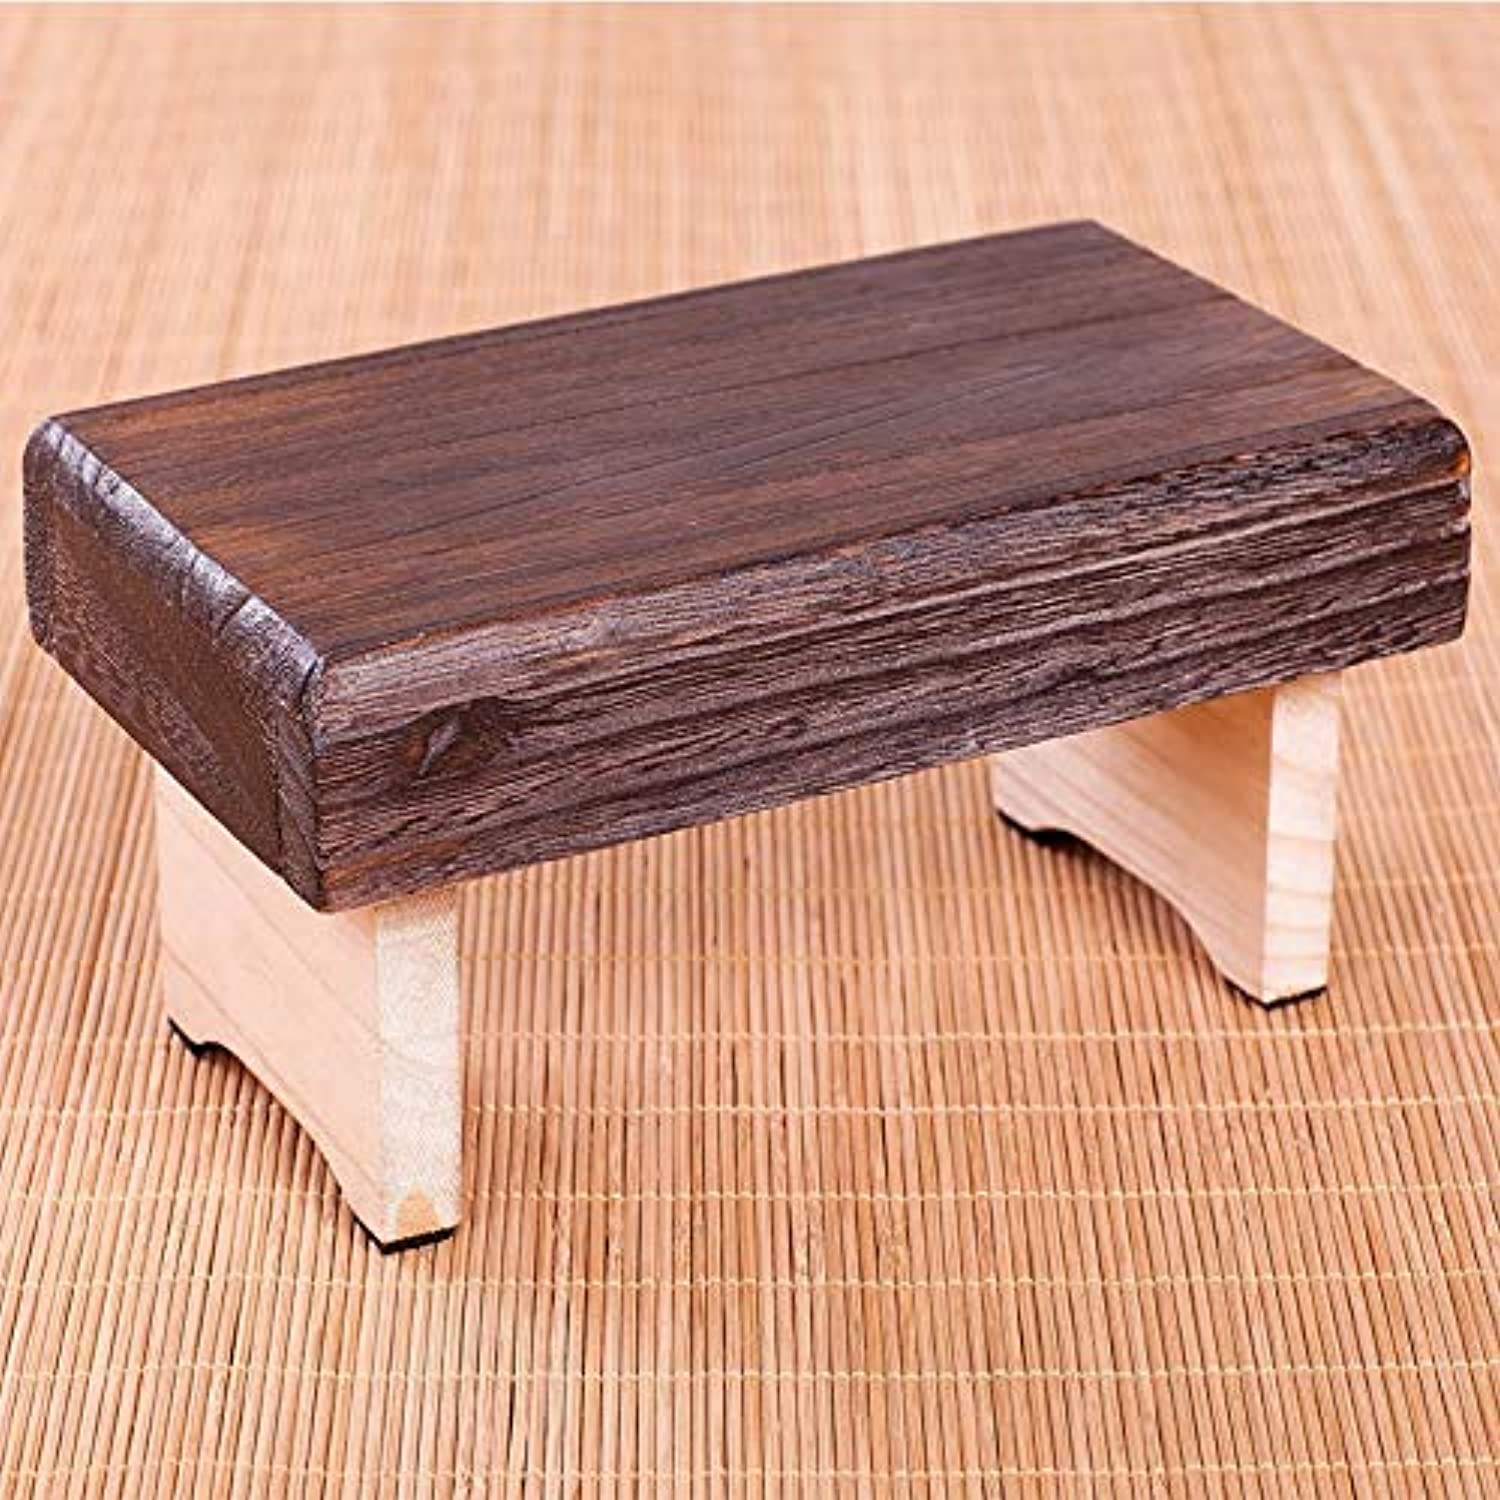 YJLGRYF Large Portable Wooden Folding Stool Foldable Footstool Easy Storage for Home Kitchen Or Camping